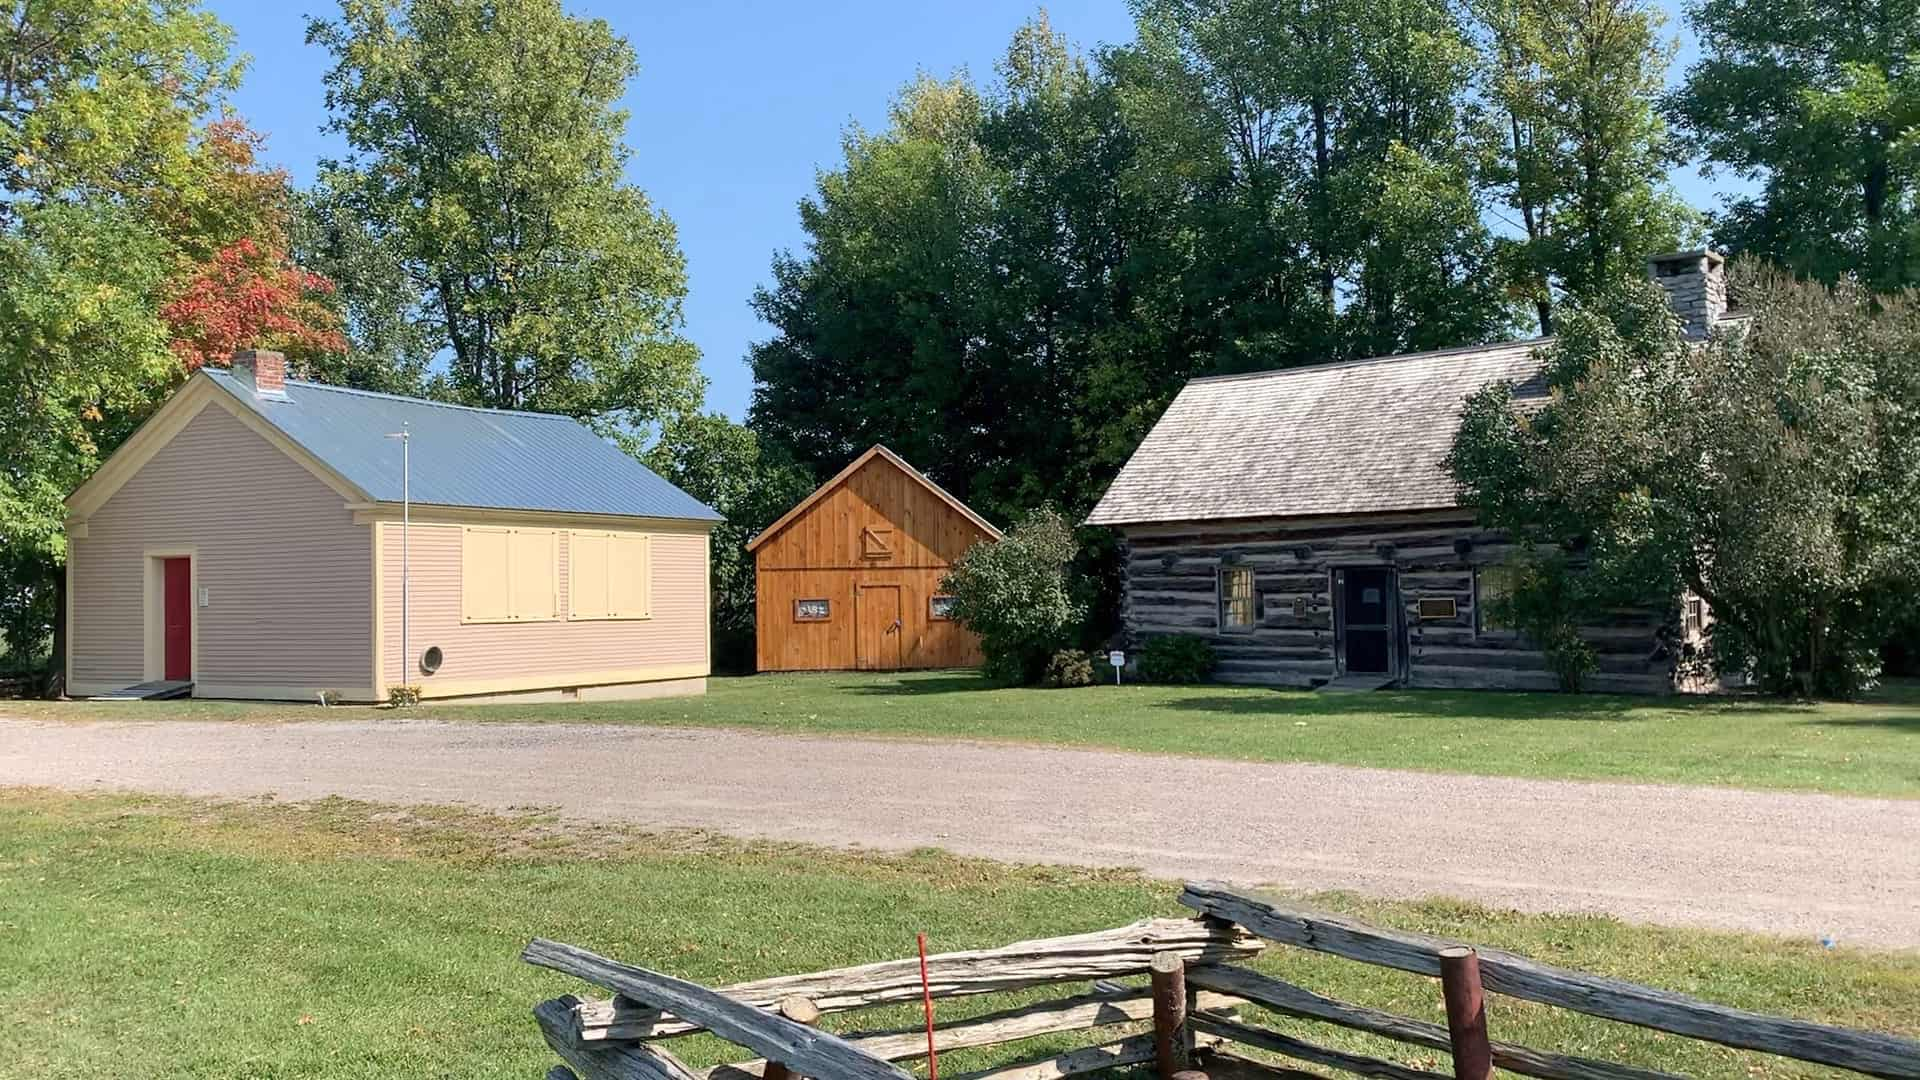 Hyde Log Cabin and Schoolhouse in Grand Isle, Vermont